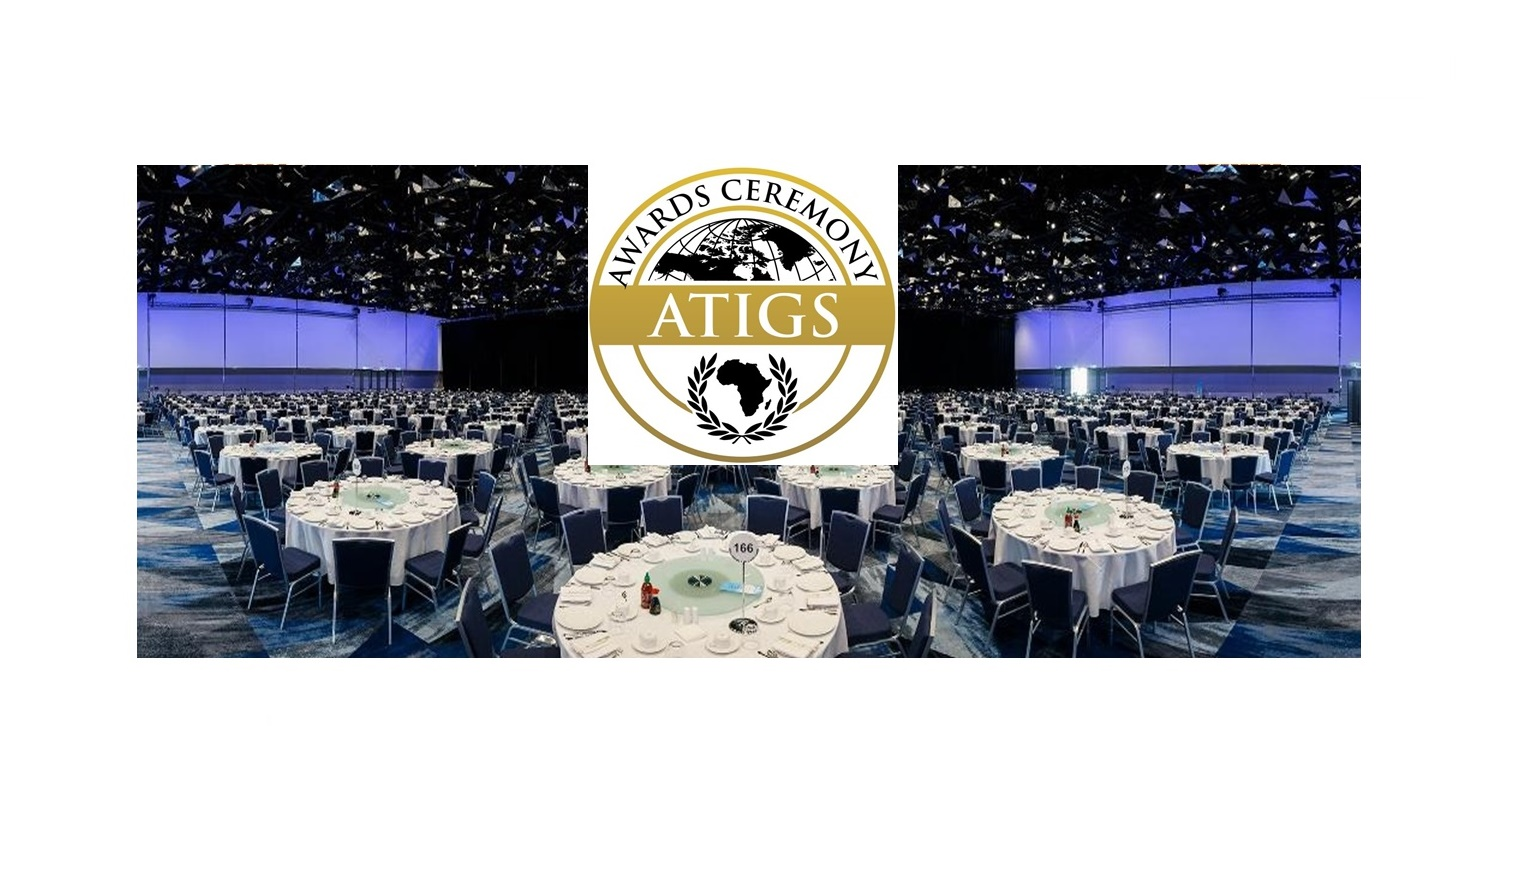 ATIGS AWARDS CEREMONY